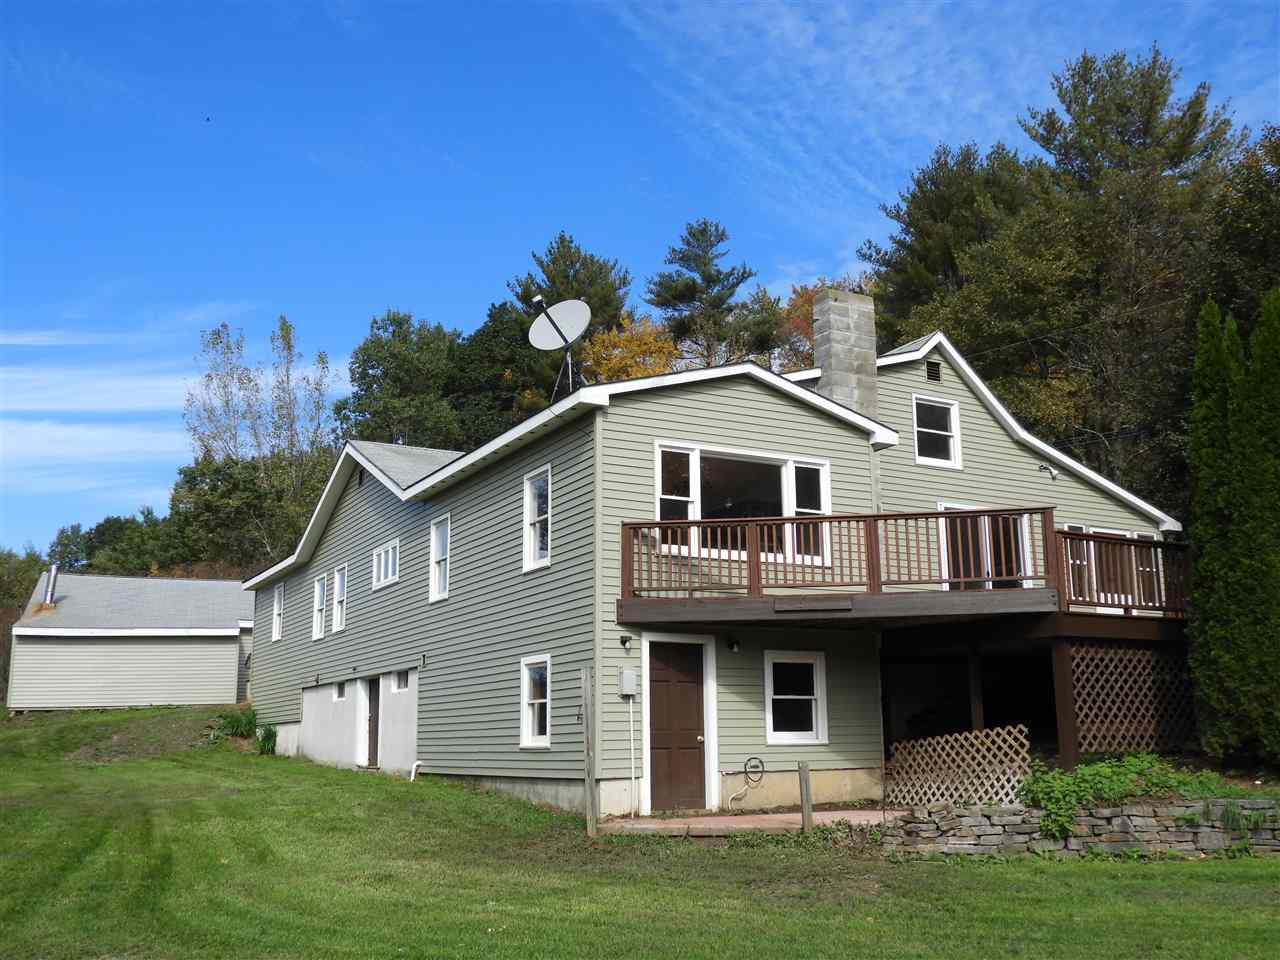 MLS 4723581: 13 Russell Road, Langdon NH